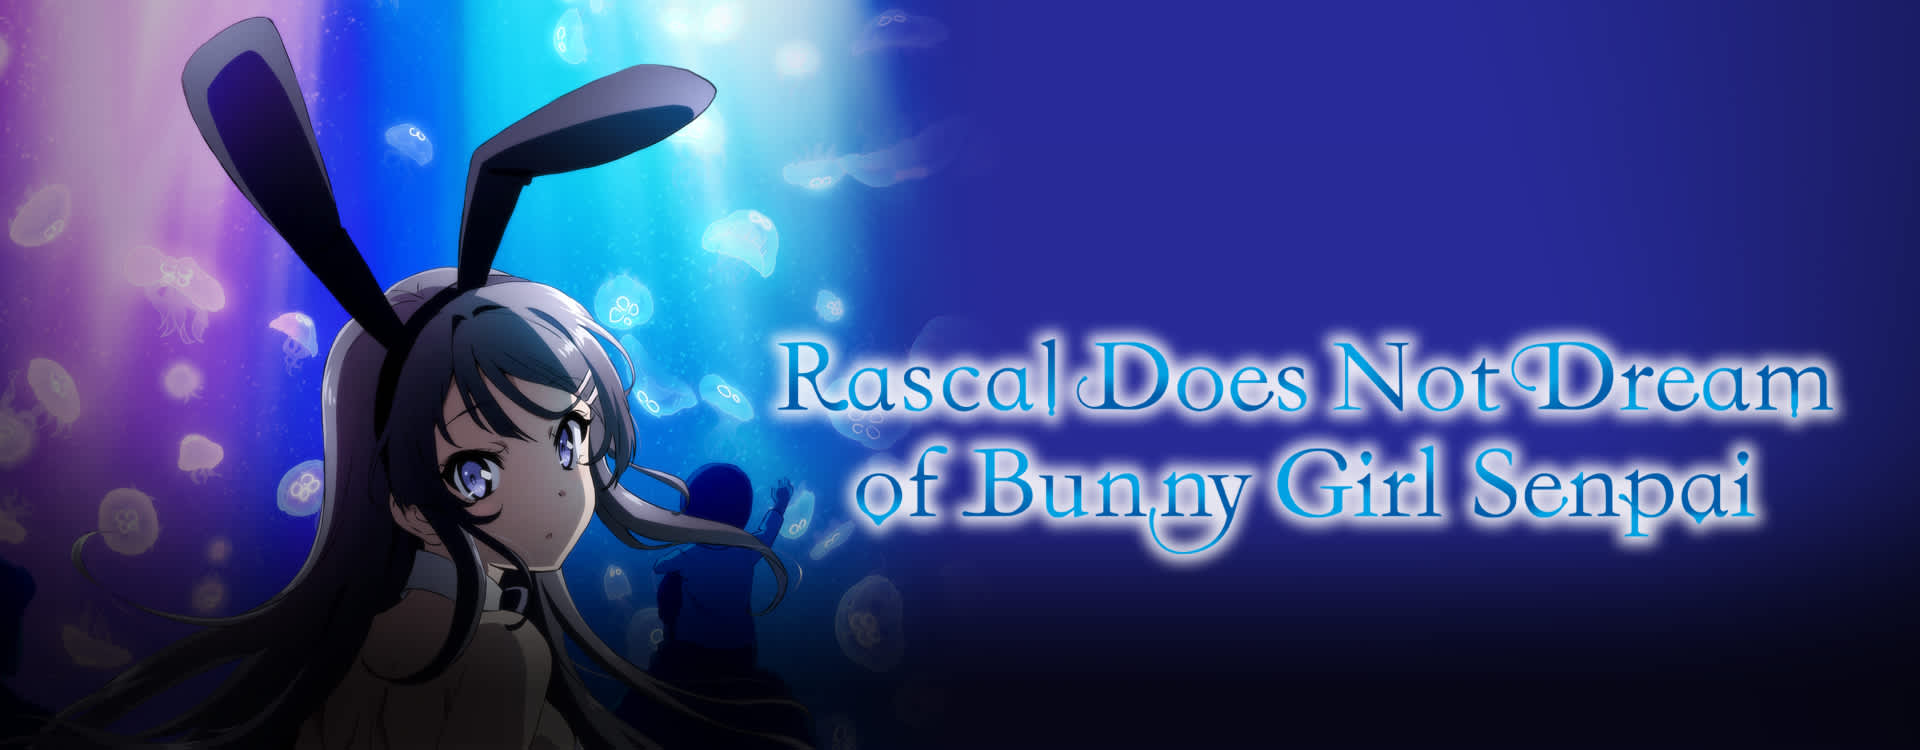 Watch Rascal Does Not Dream Of Bunny Girl Senpai Sub Comedy